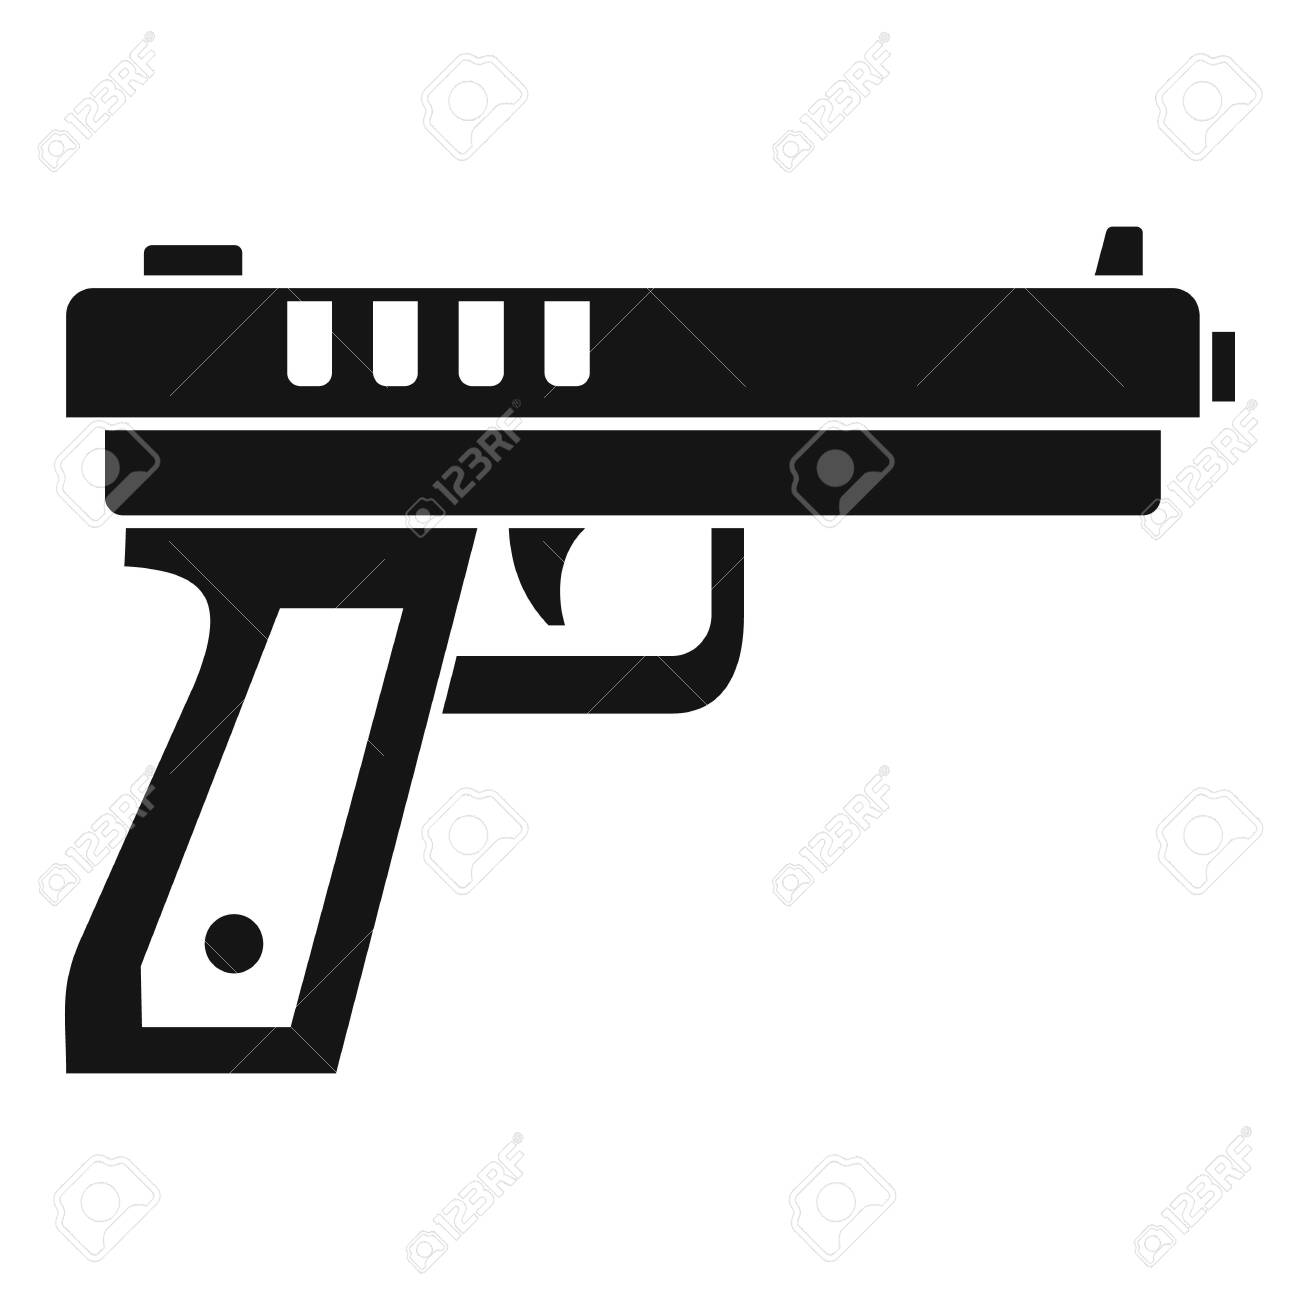 gun pistol icon simple illustration of gun pistol vector icon royalty free cliparts vectors and stock illustration image 127026070 gun pistol icon simple illustration of gun pistol vector icon